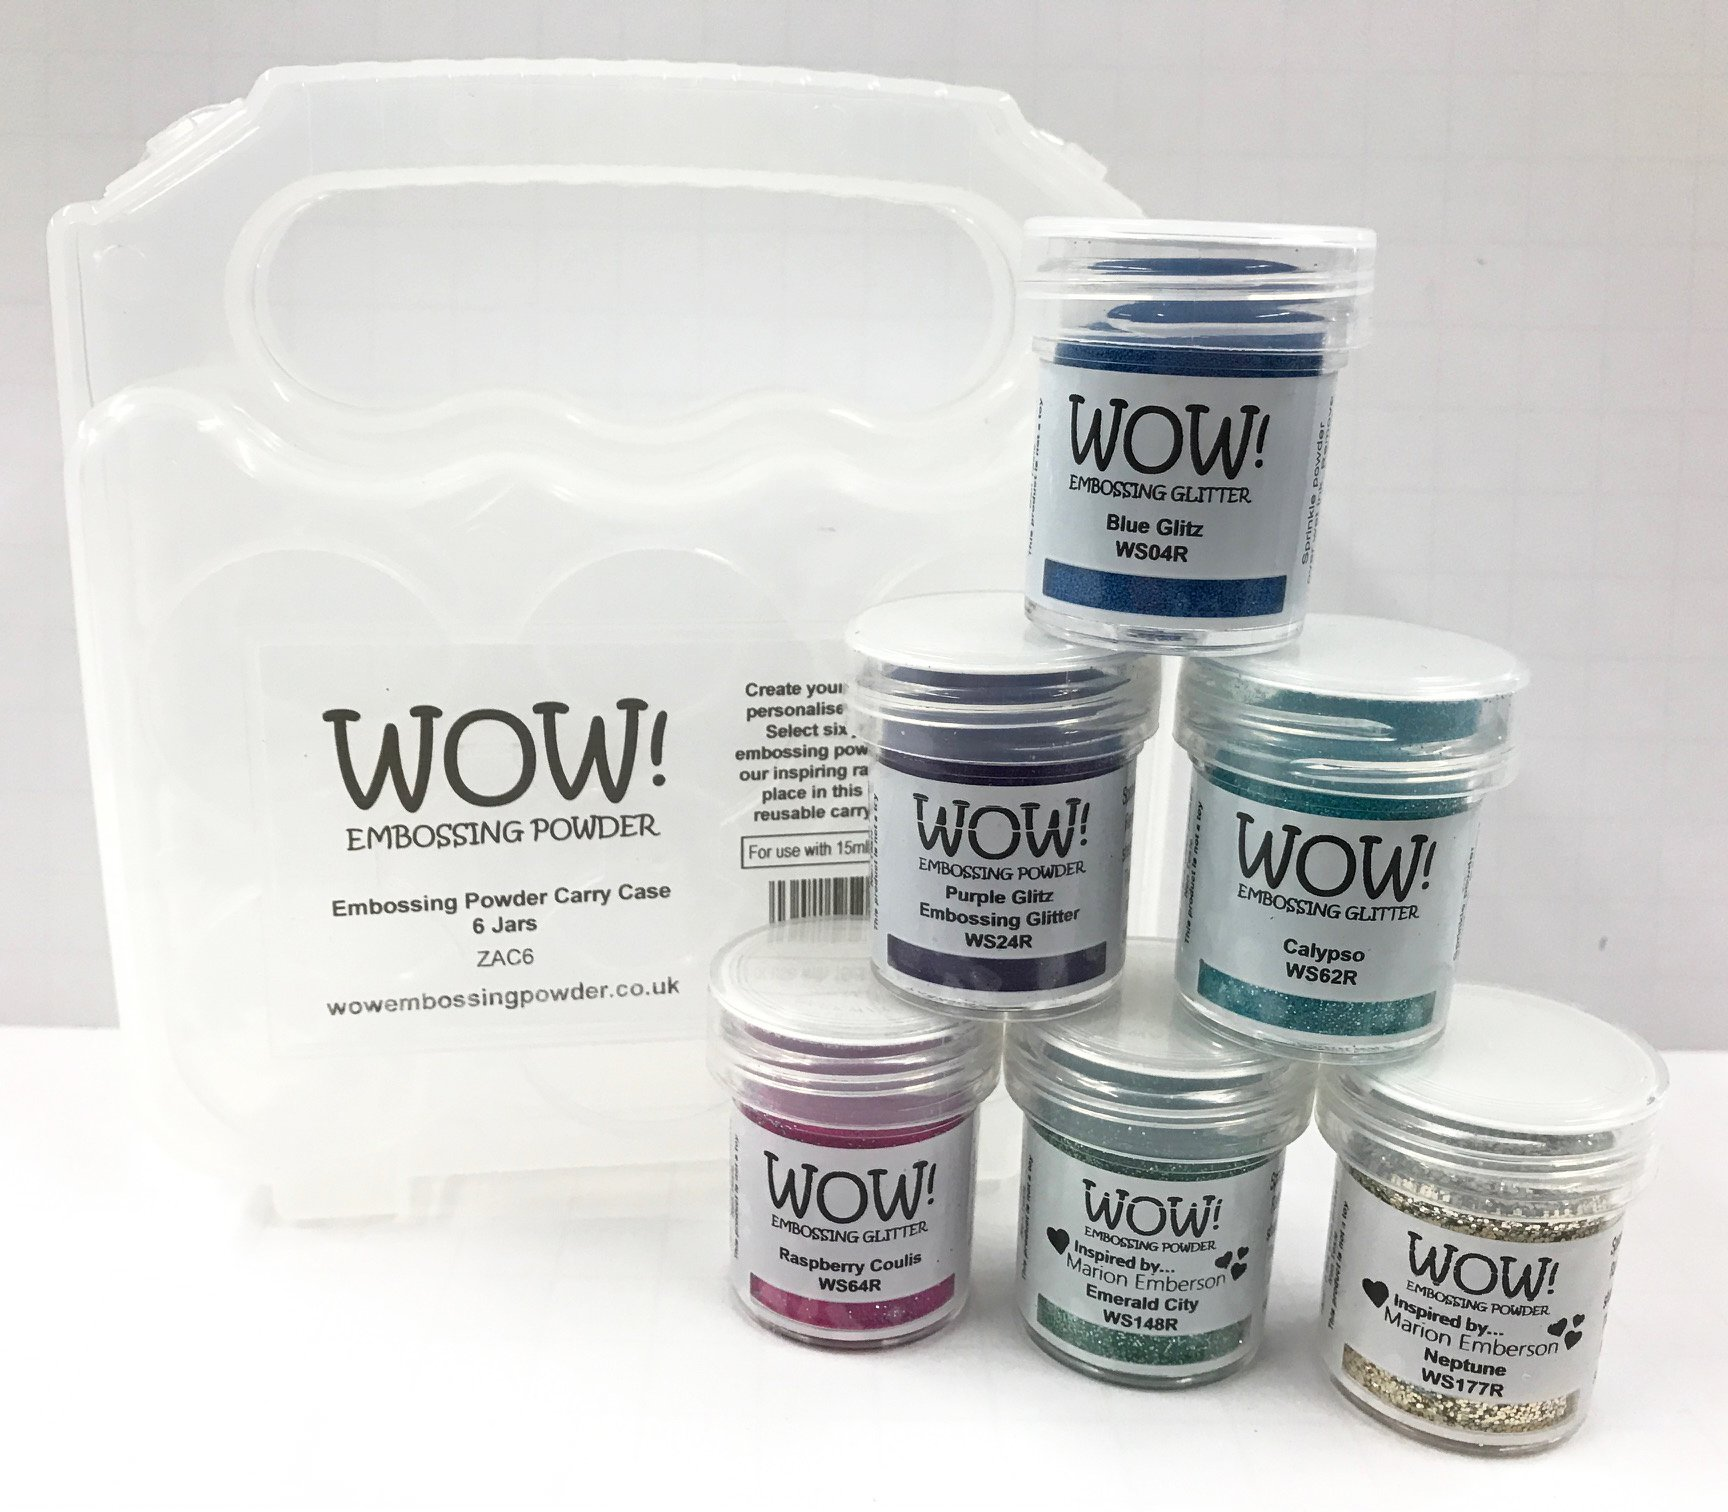 WOW! Embossing Powder and Glitter Magical Mermaid Colors 6-Pack Kit and Clear Carrying Case - Bundle 7 Items